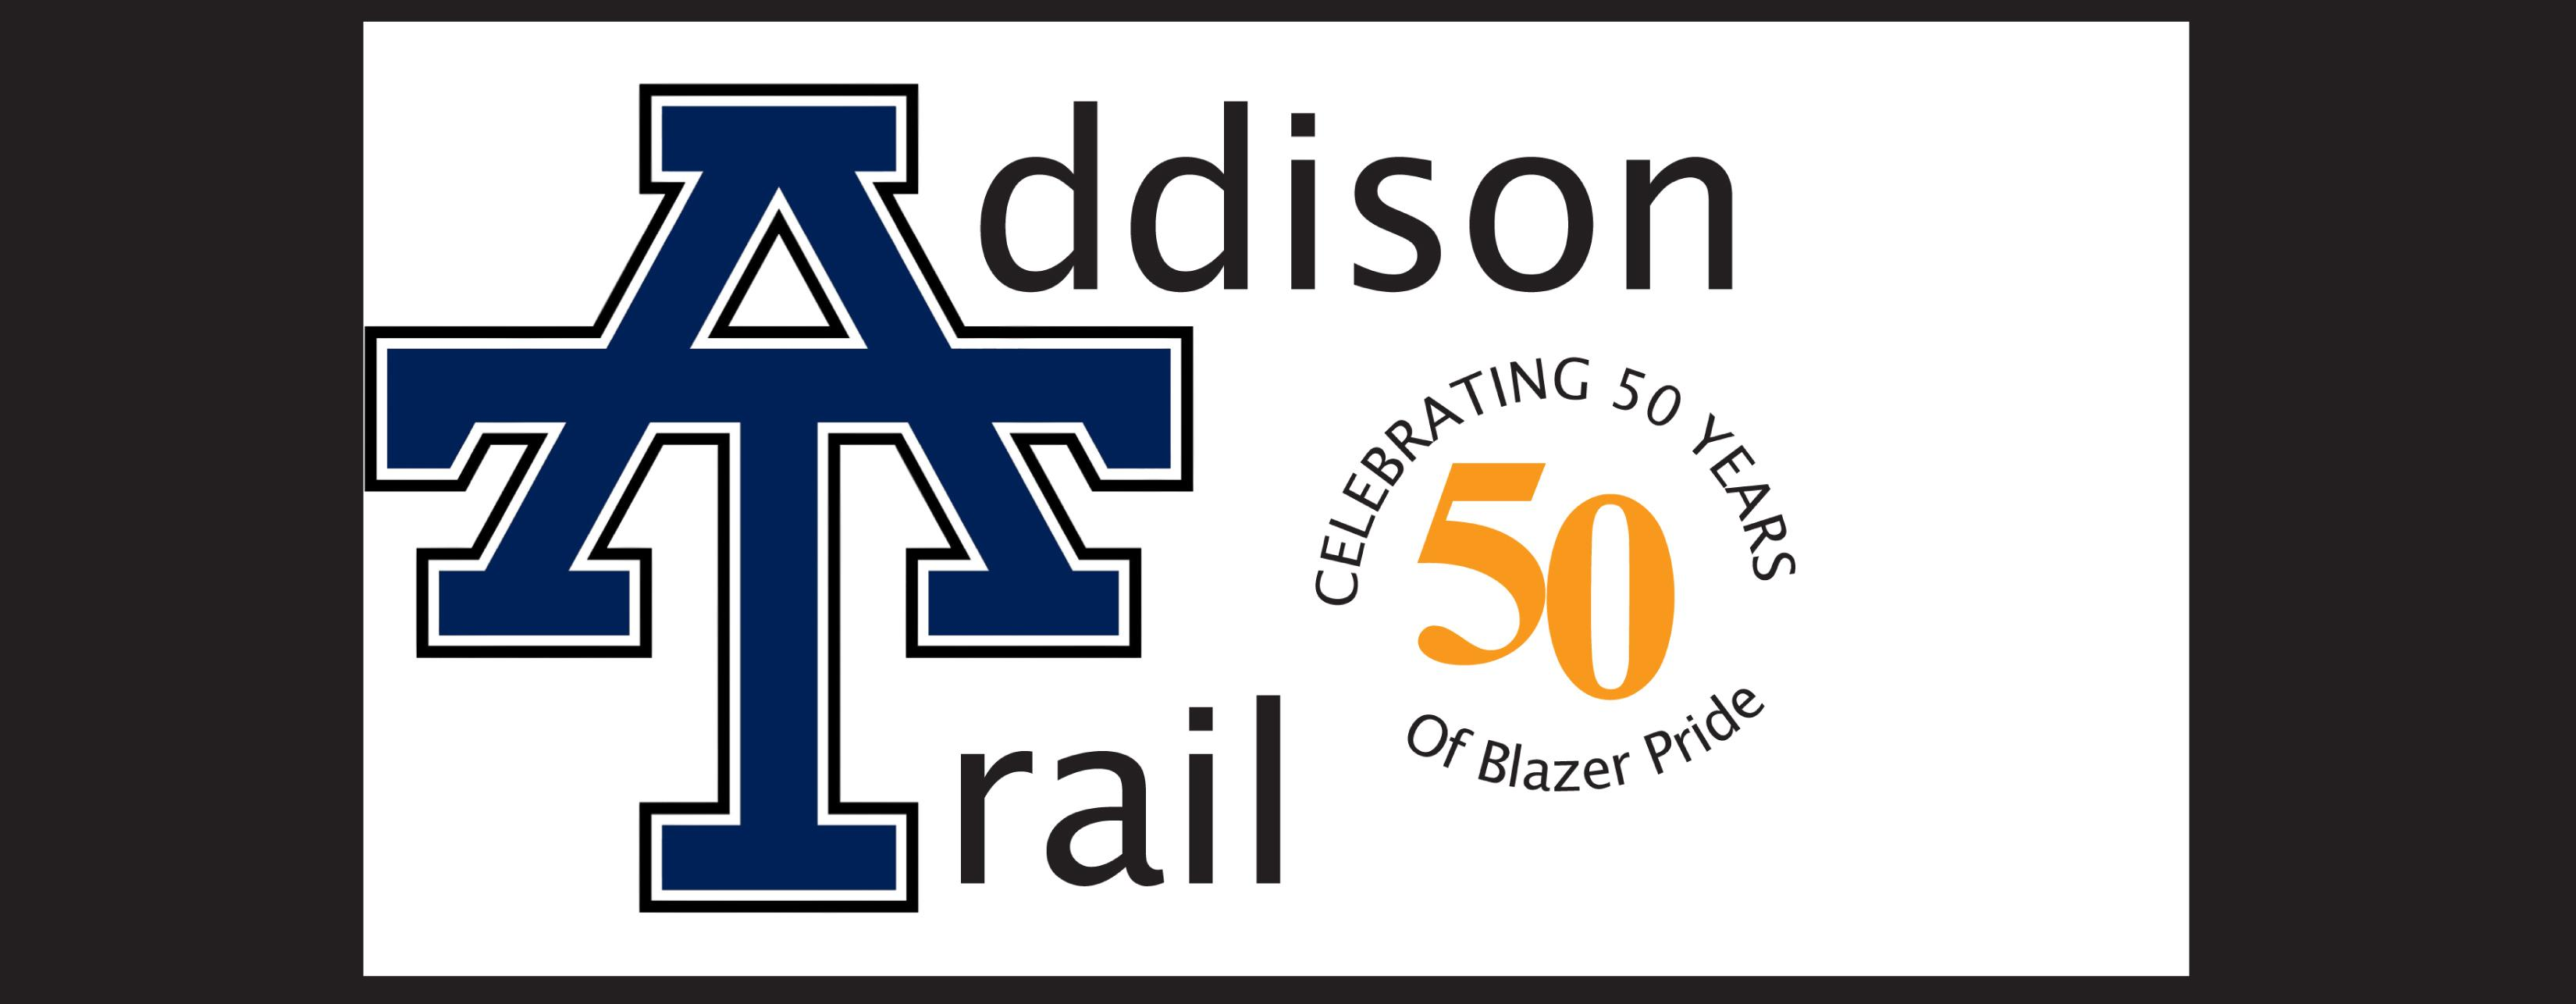 Addison Trail invites you to join in celebrating the school's 50th anniversary